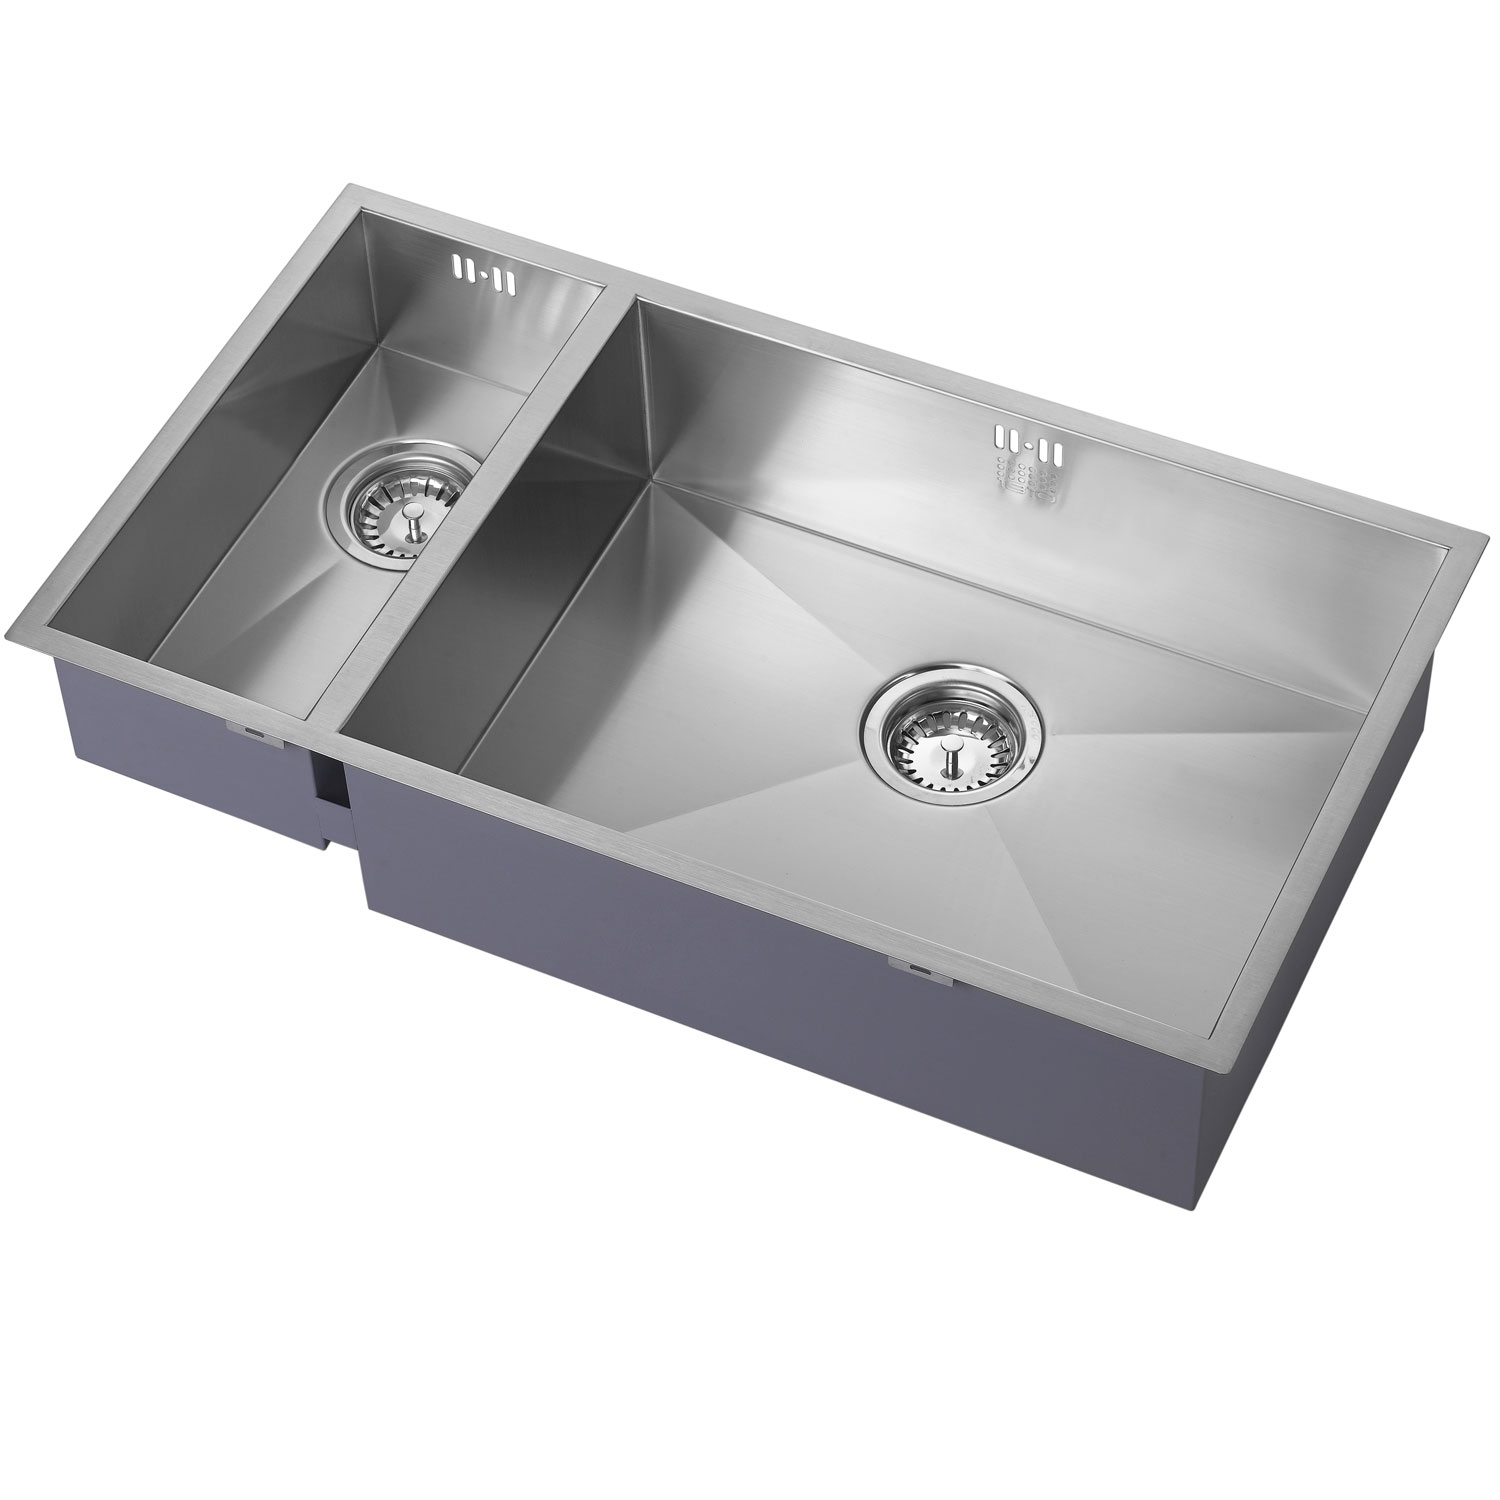 The 1810 Company Zenduo 180/550U 1.5 Bowl Kitchen Sink - Right Handed-0